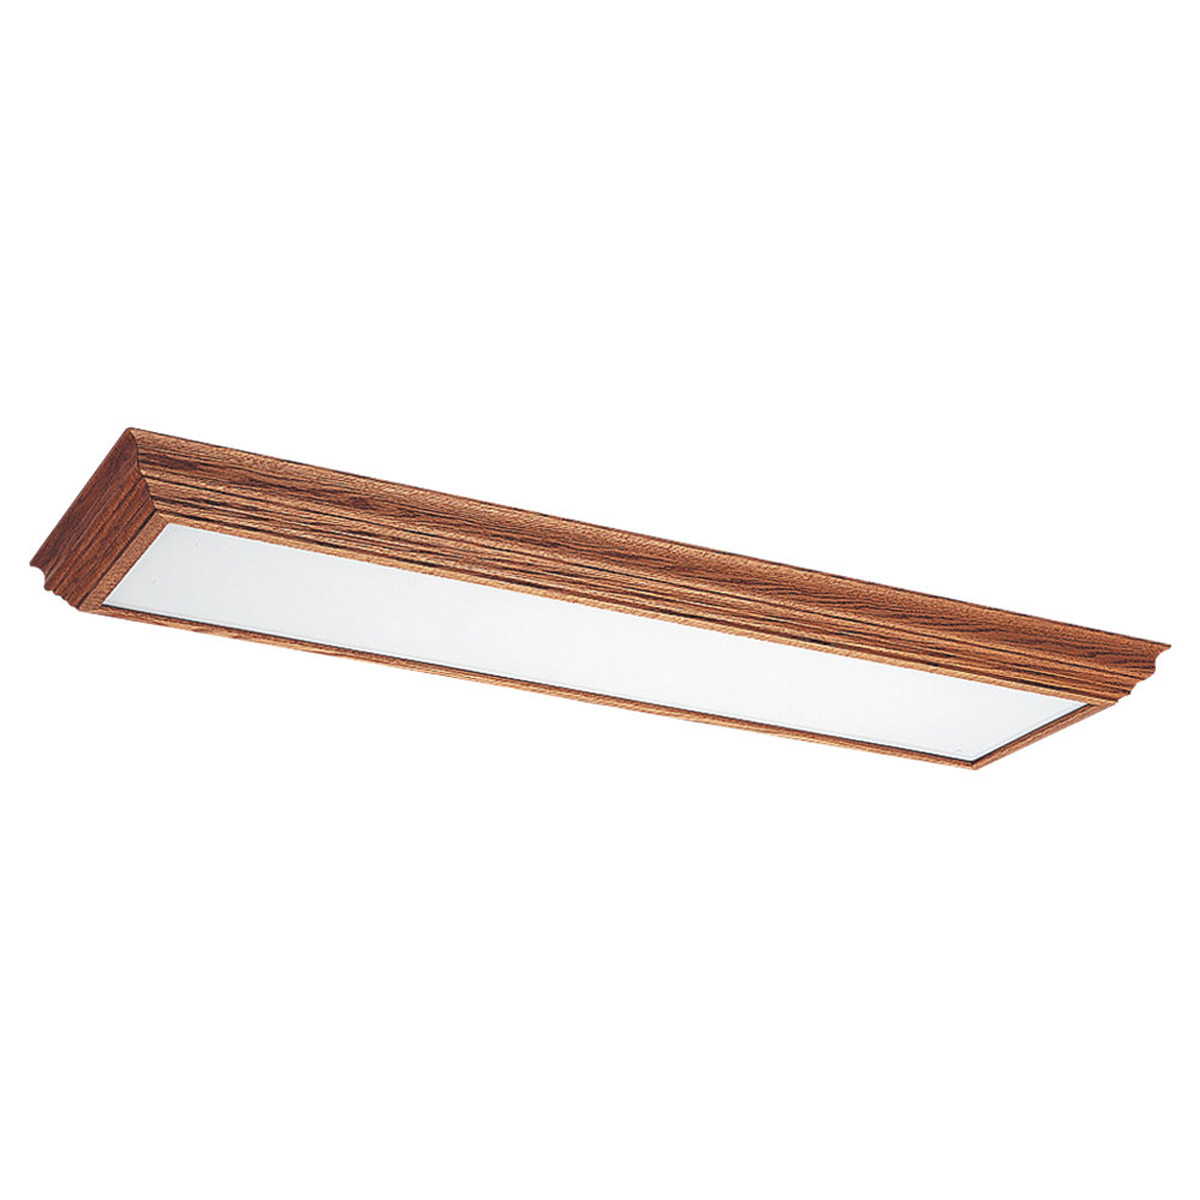 Sea Gull Lighting Signature Fluorescent Trim Only in Oak 5978-43